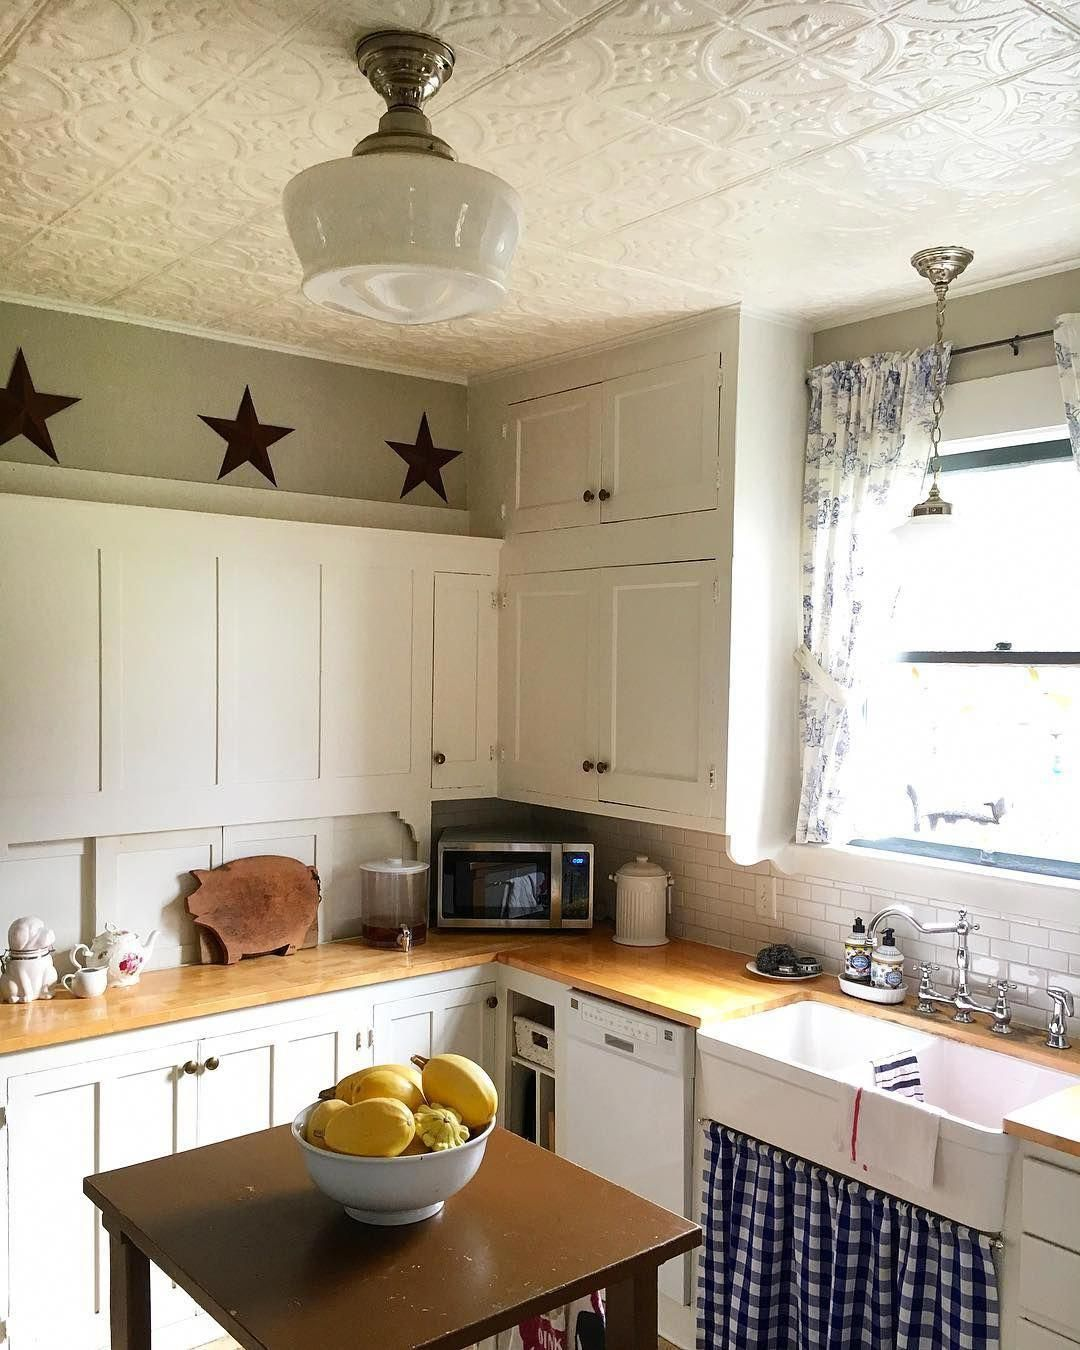 In lieu of doors, this cute farmhouse kitchen uses